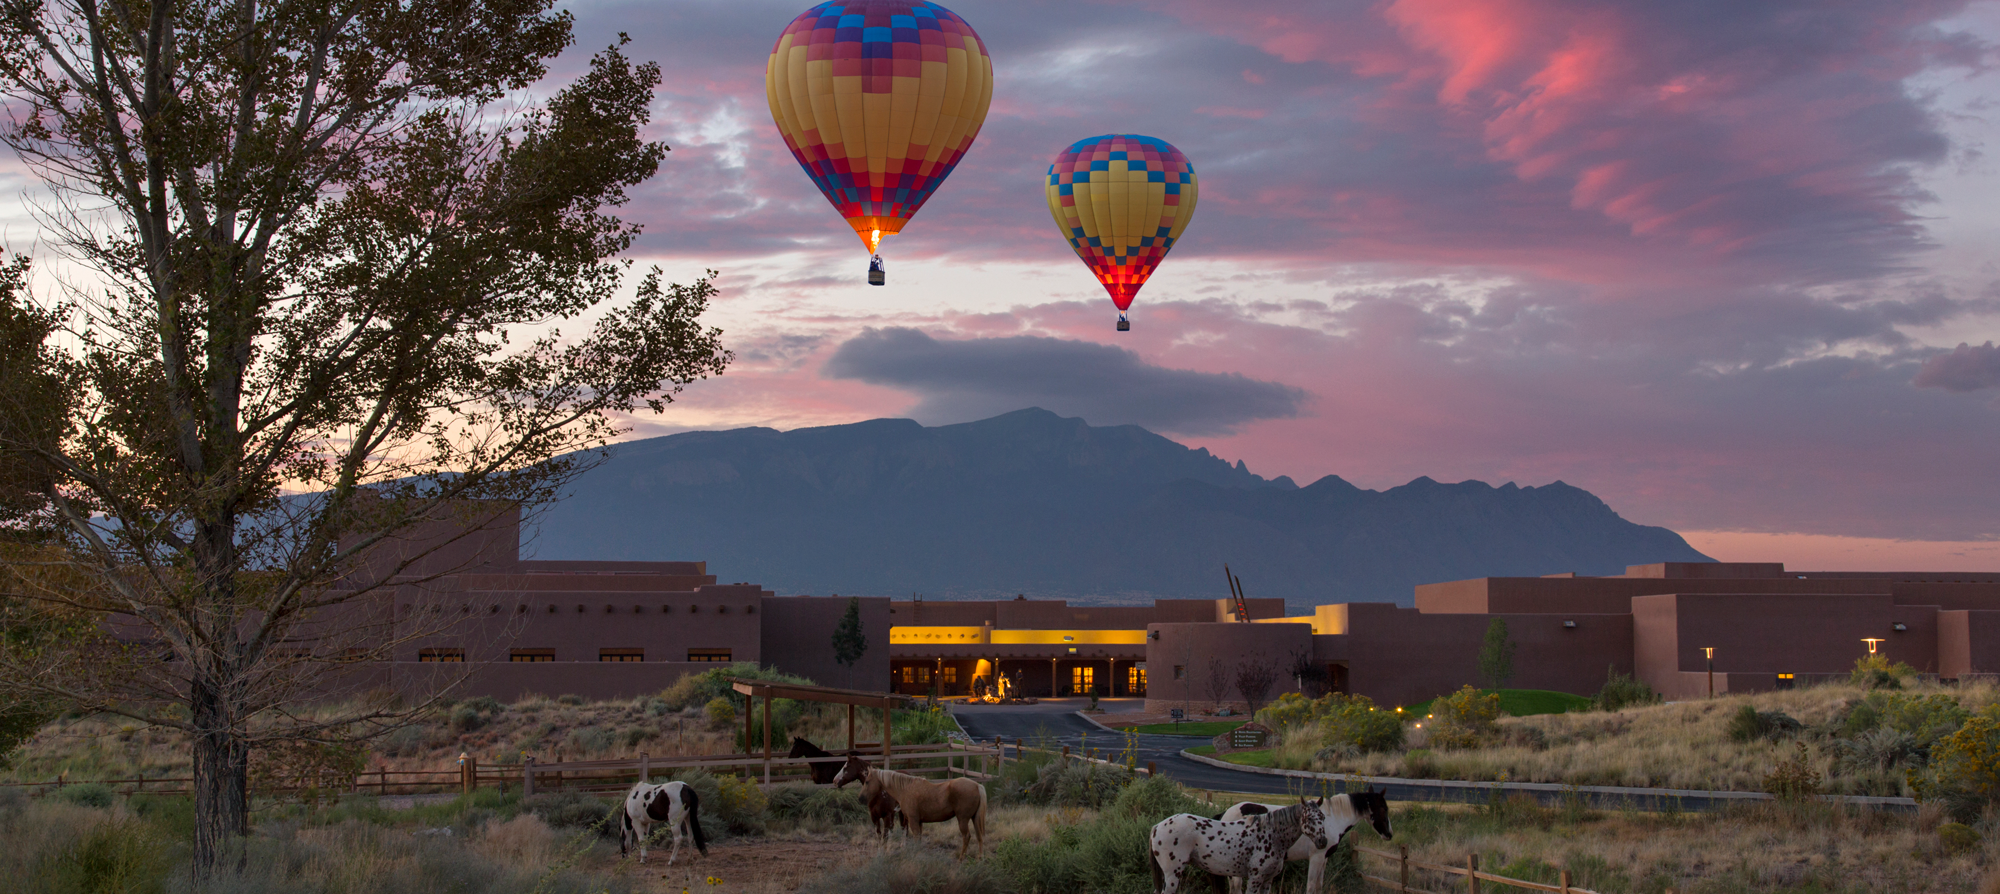 New Mexico Tourism Department Request For Proposals